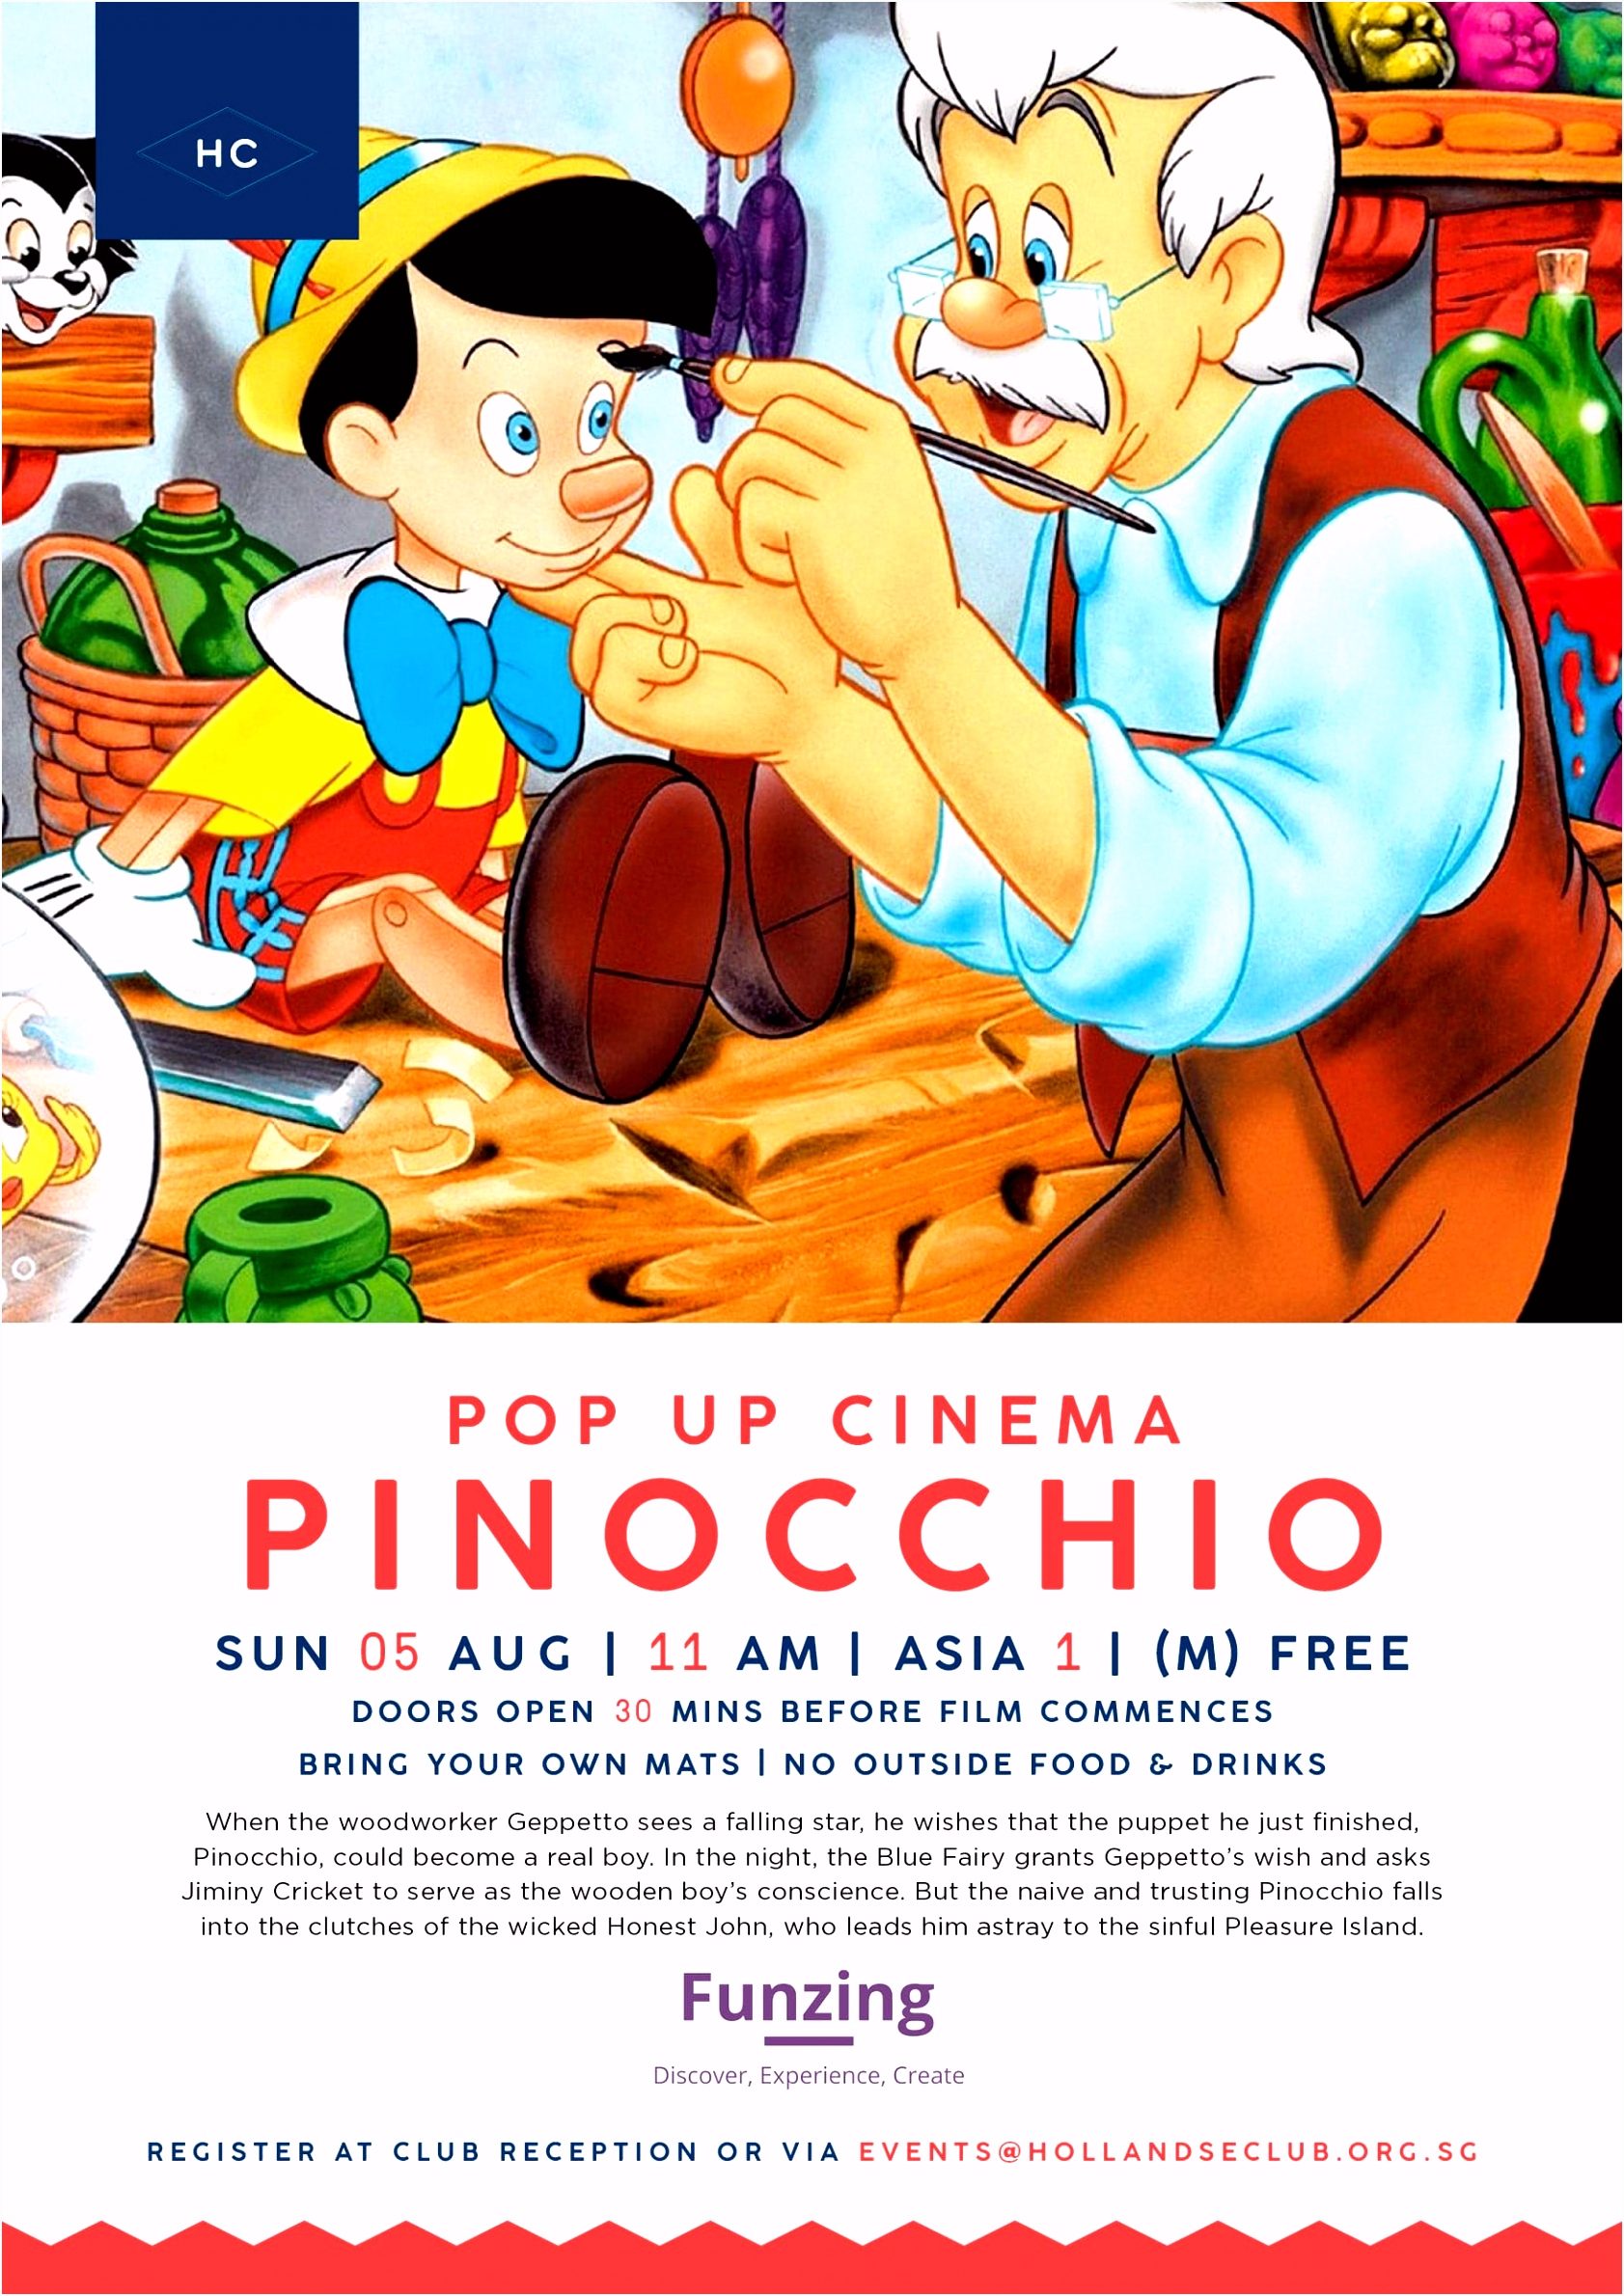 0818 Pop Up Cinema Pinocchio The Hollandse Club